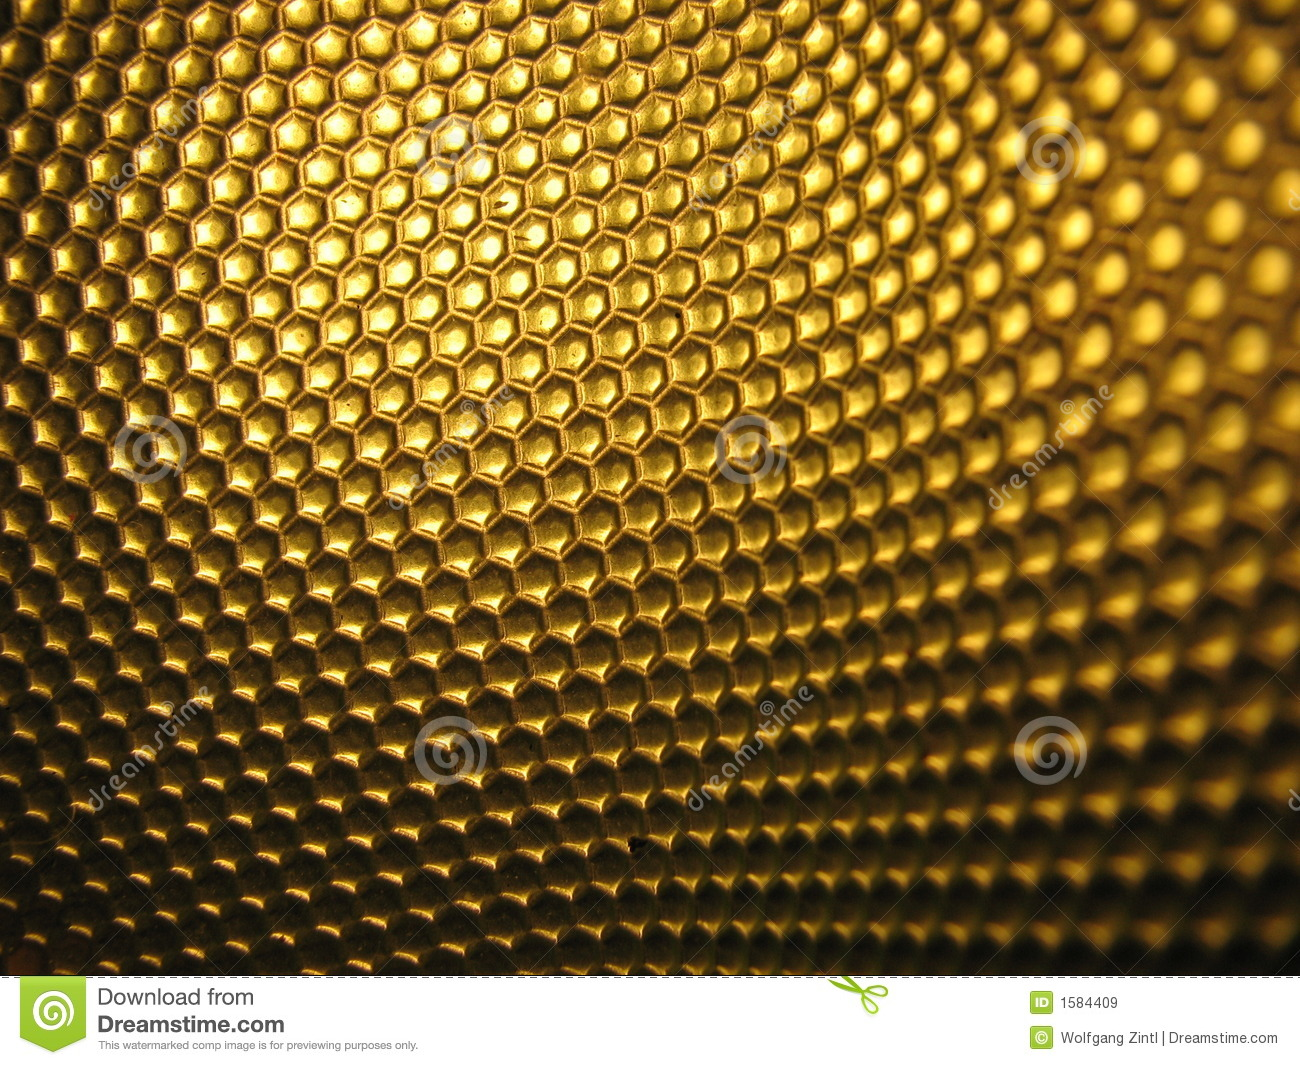 Bee Hive Background 2 Royalty Free Stock Images - Image: 1584409